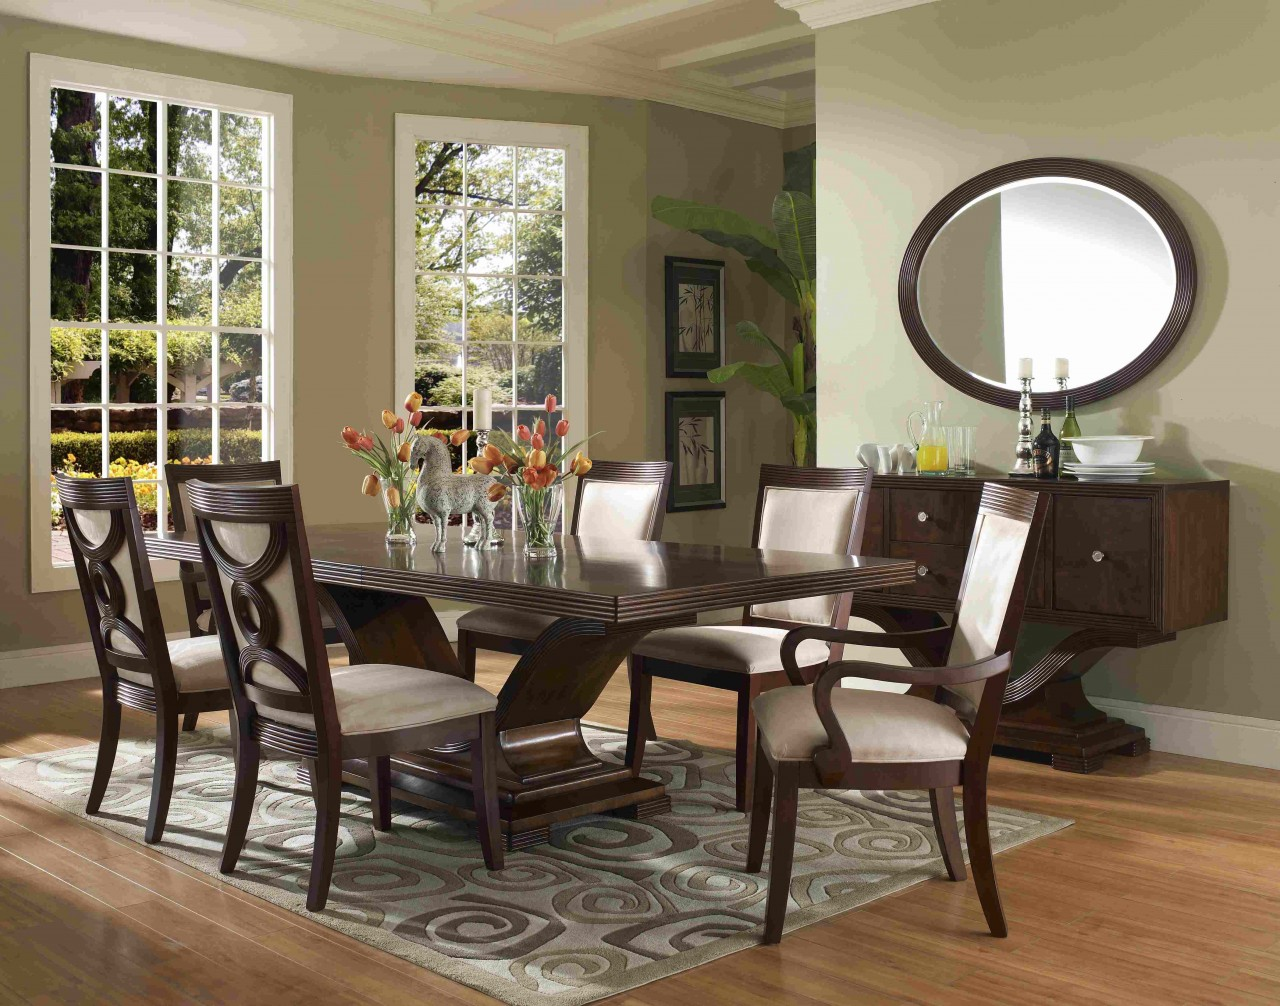 Perfect formal dining room sets for 8 homesfeed for Elegant dining room furniture